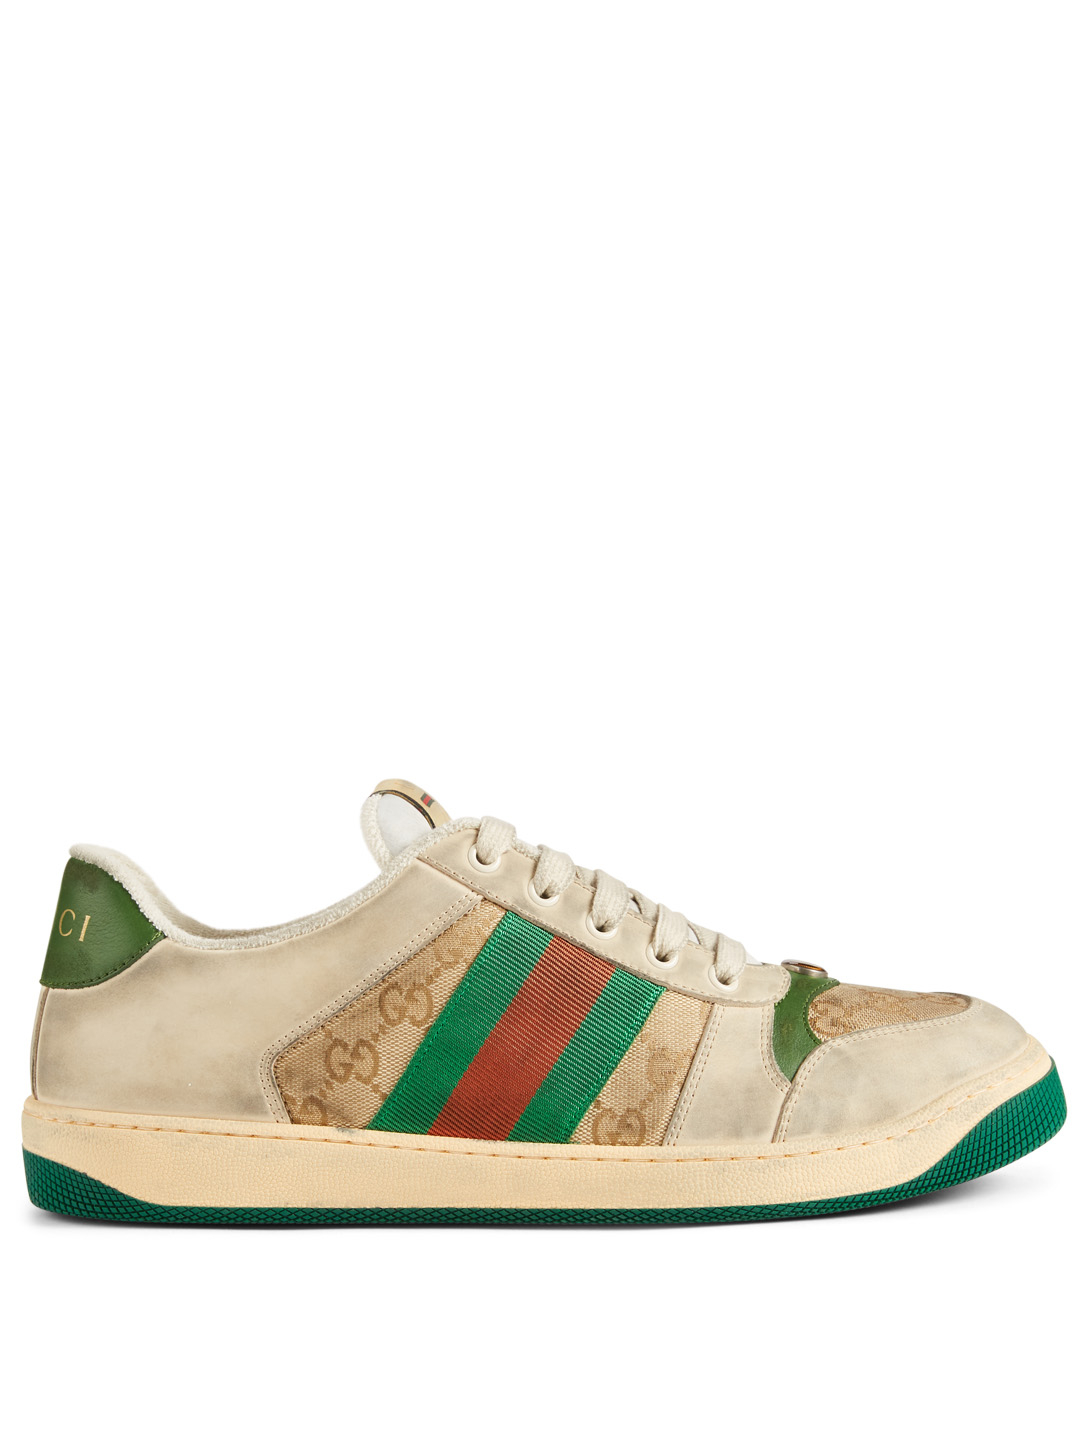 GUCCI Screener GG Canvas And Leather Sneakers Men's Neutral